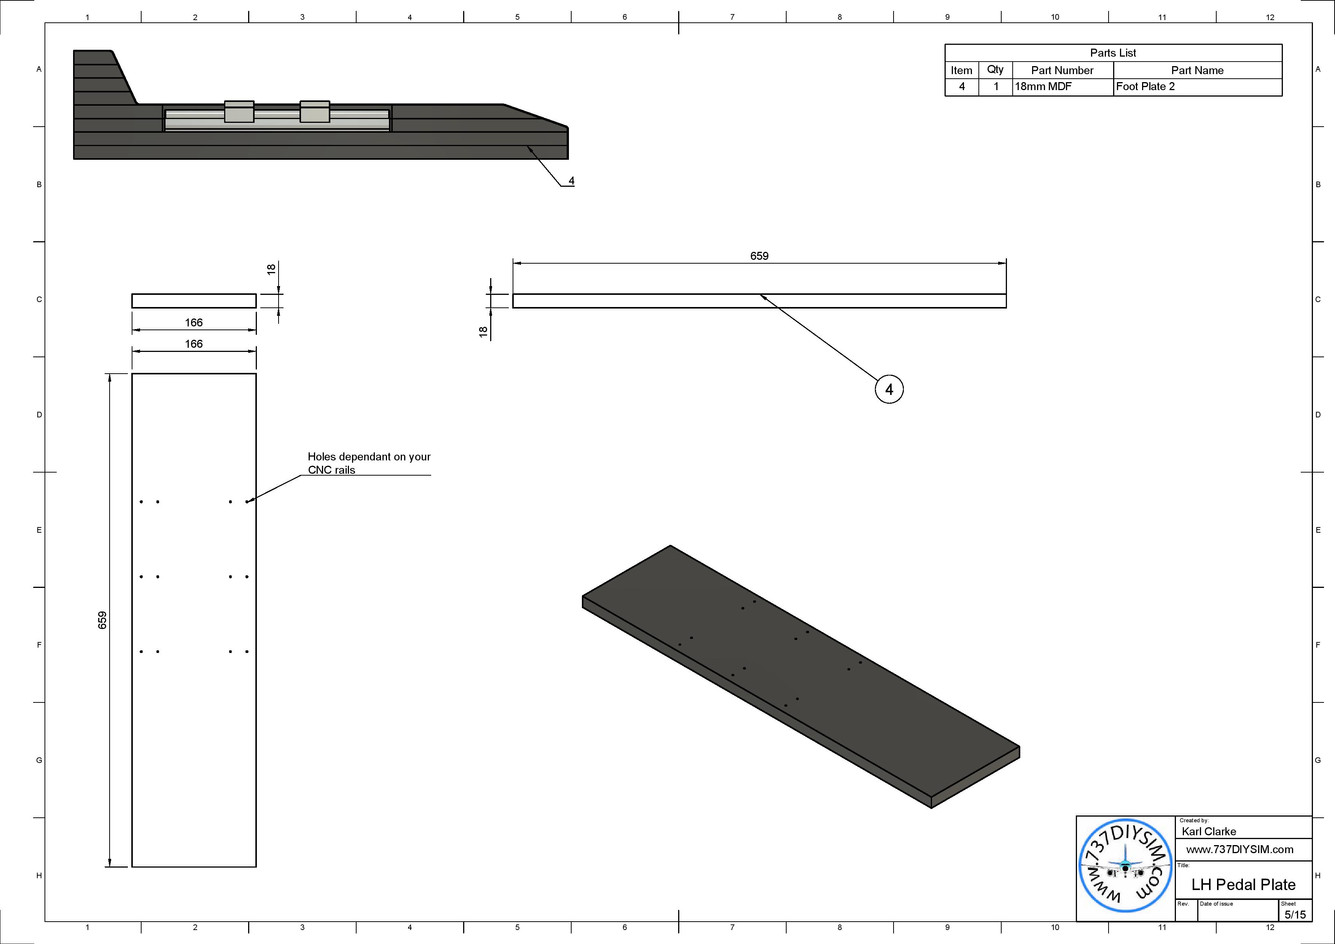 LH Pedal Plate Drawing v1-page-005.jpg